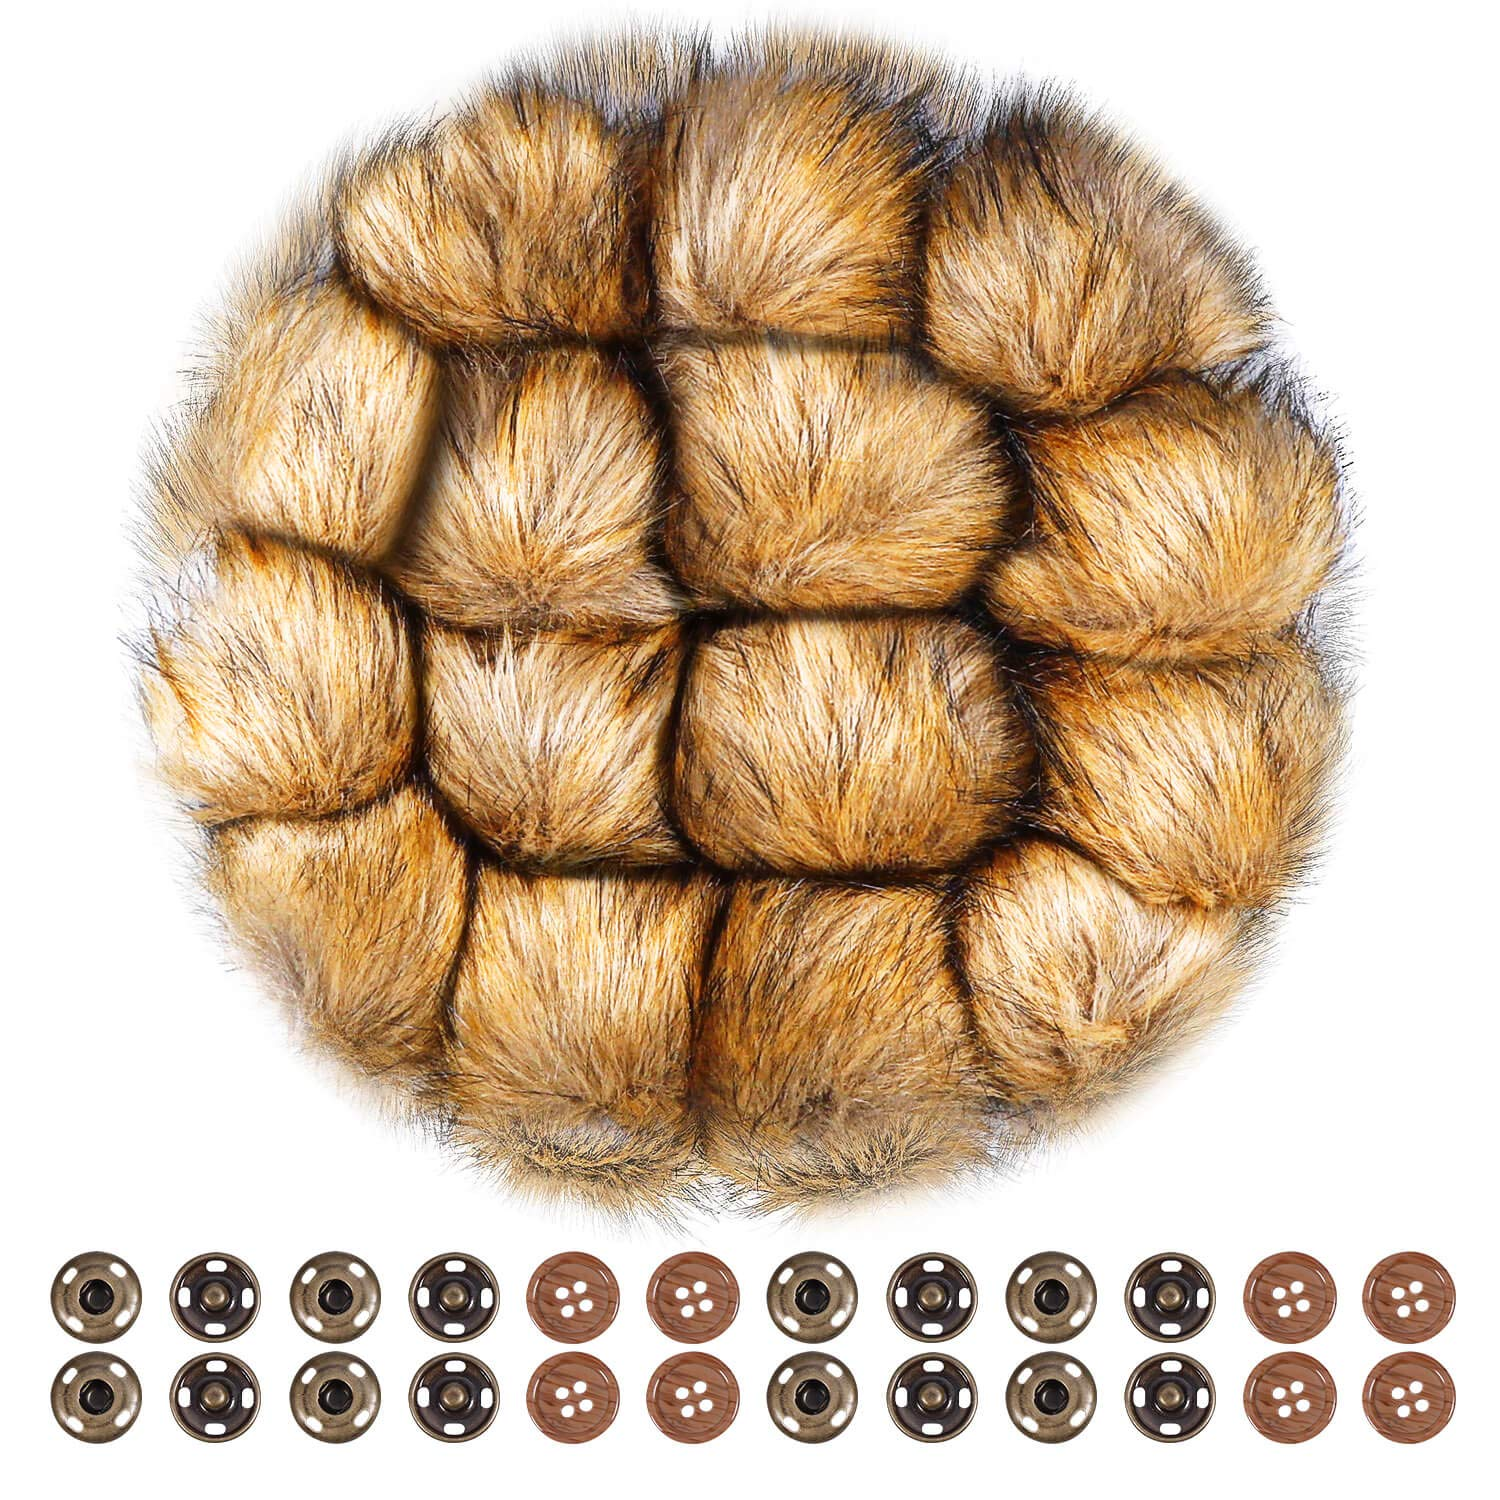 Anezus 15 Pieces Faux Fur Pom Poms for Hats with Press Button and Sewing Buttons Knitting Accessories for Crocheted Hats Bag Charm Christmas Decoration